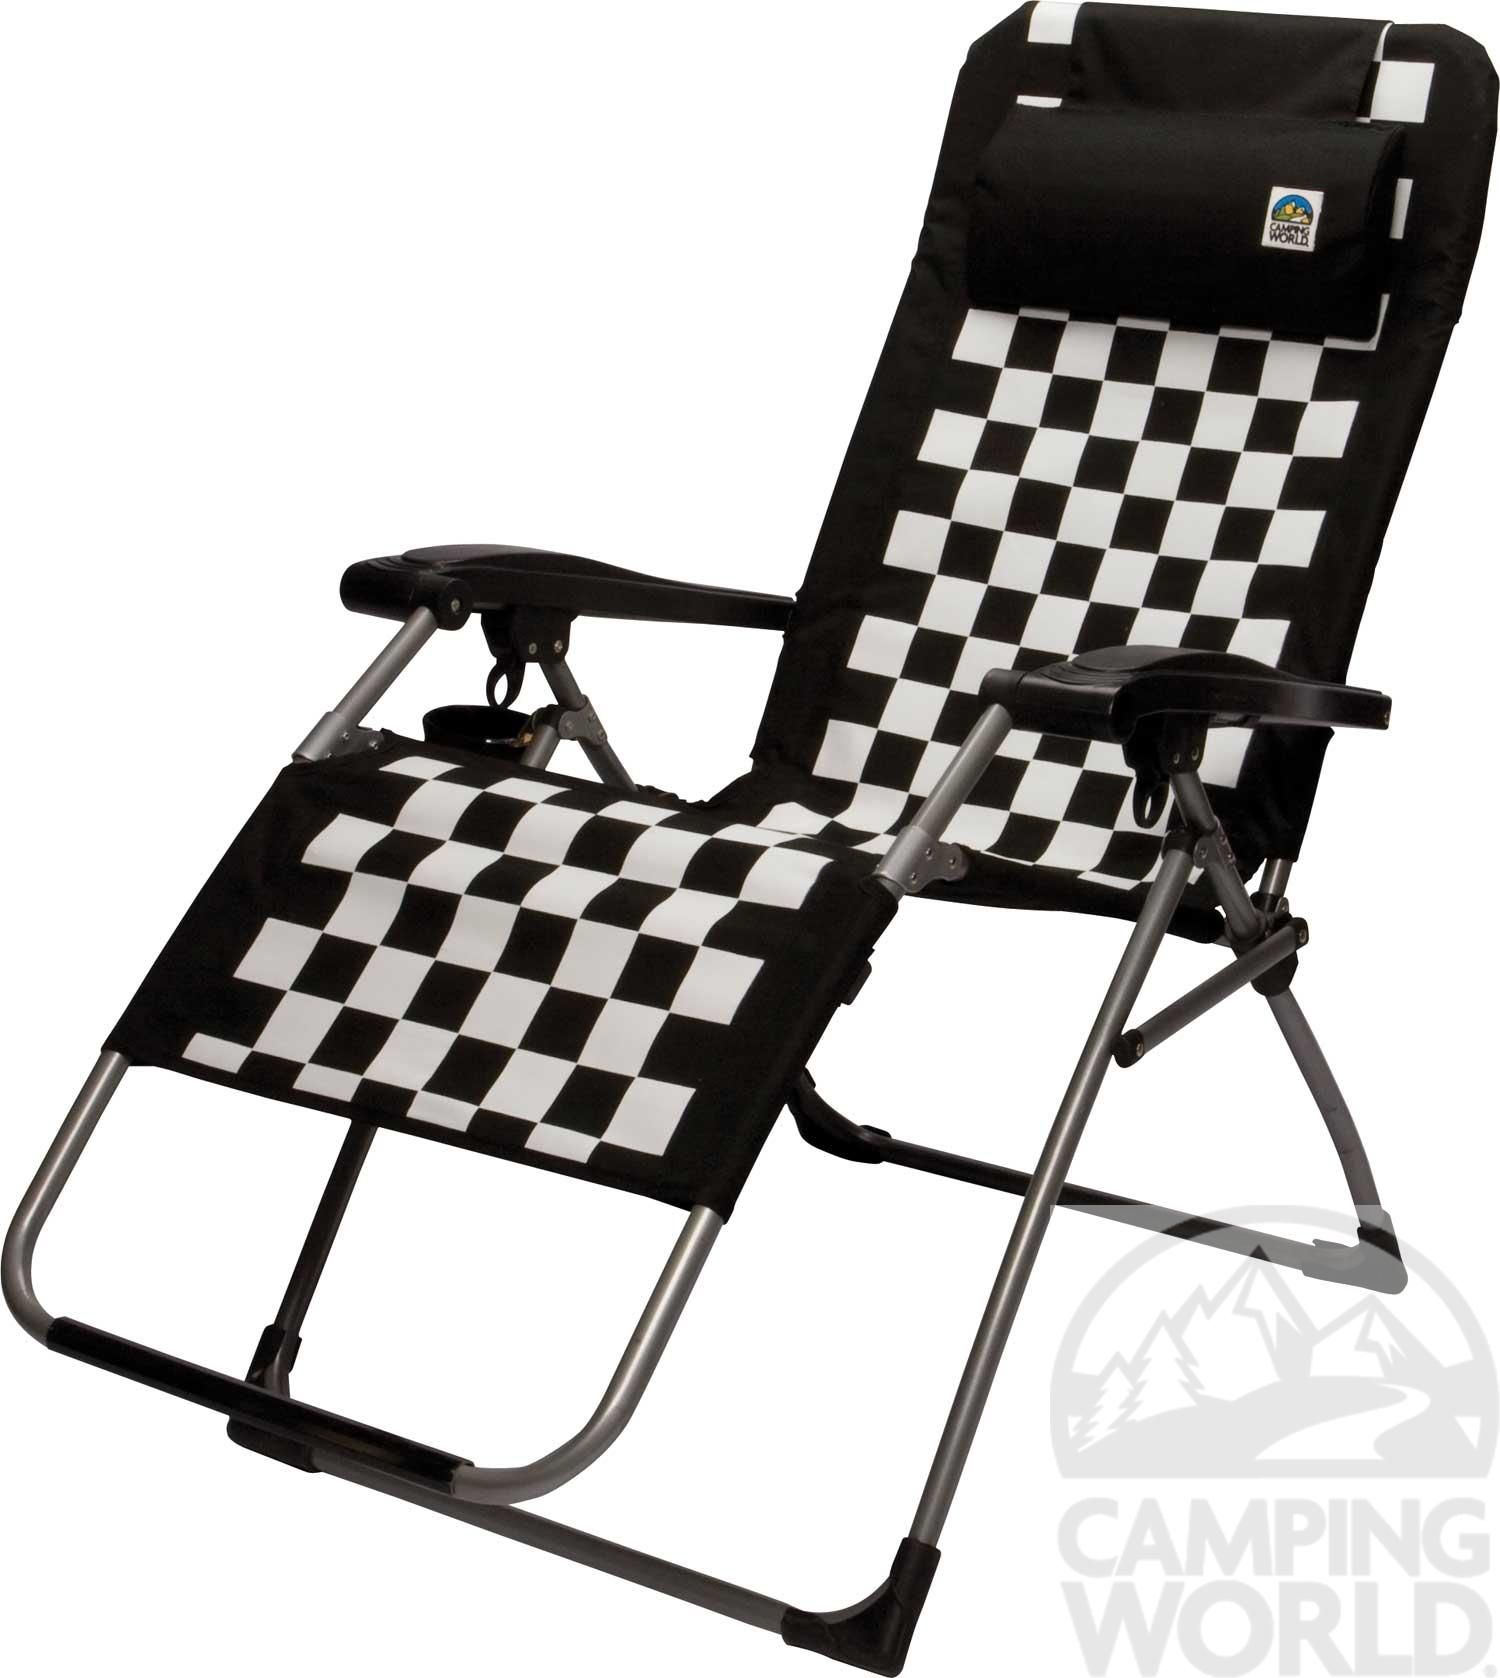 Race Sillas Bebe 2019 Checkered Flag Camping Chair Perfect For Tailgating At The